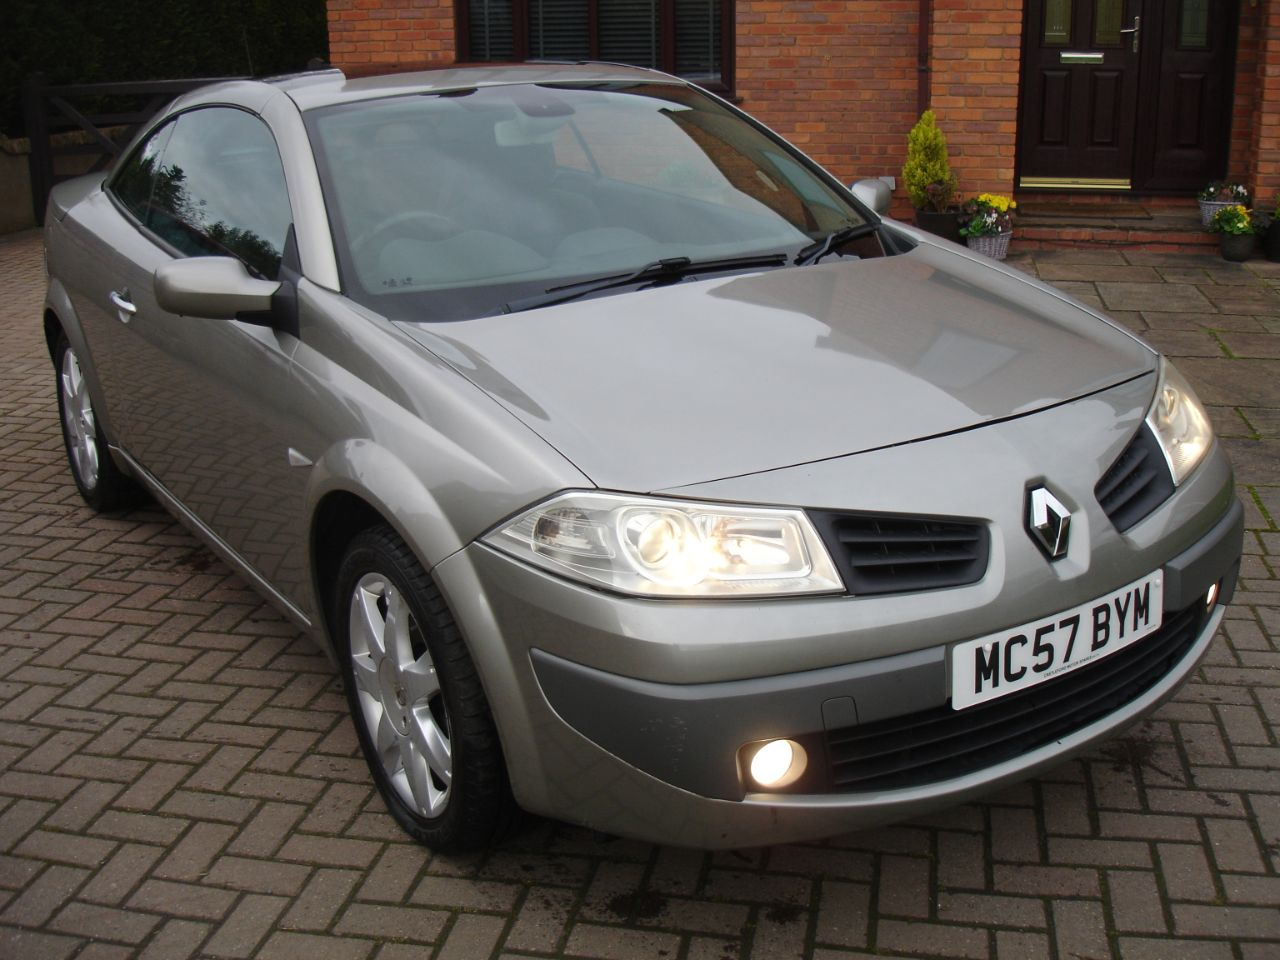 Renault Megane 1.6 VVT Dynamique 2dr Convertible Petrol Metallic Grey at Level Pitch Selby